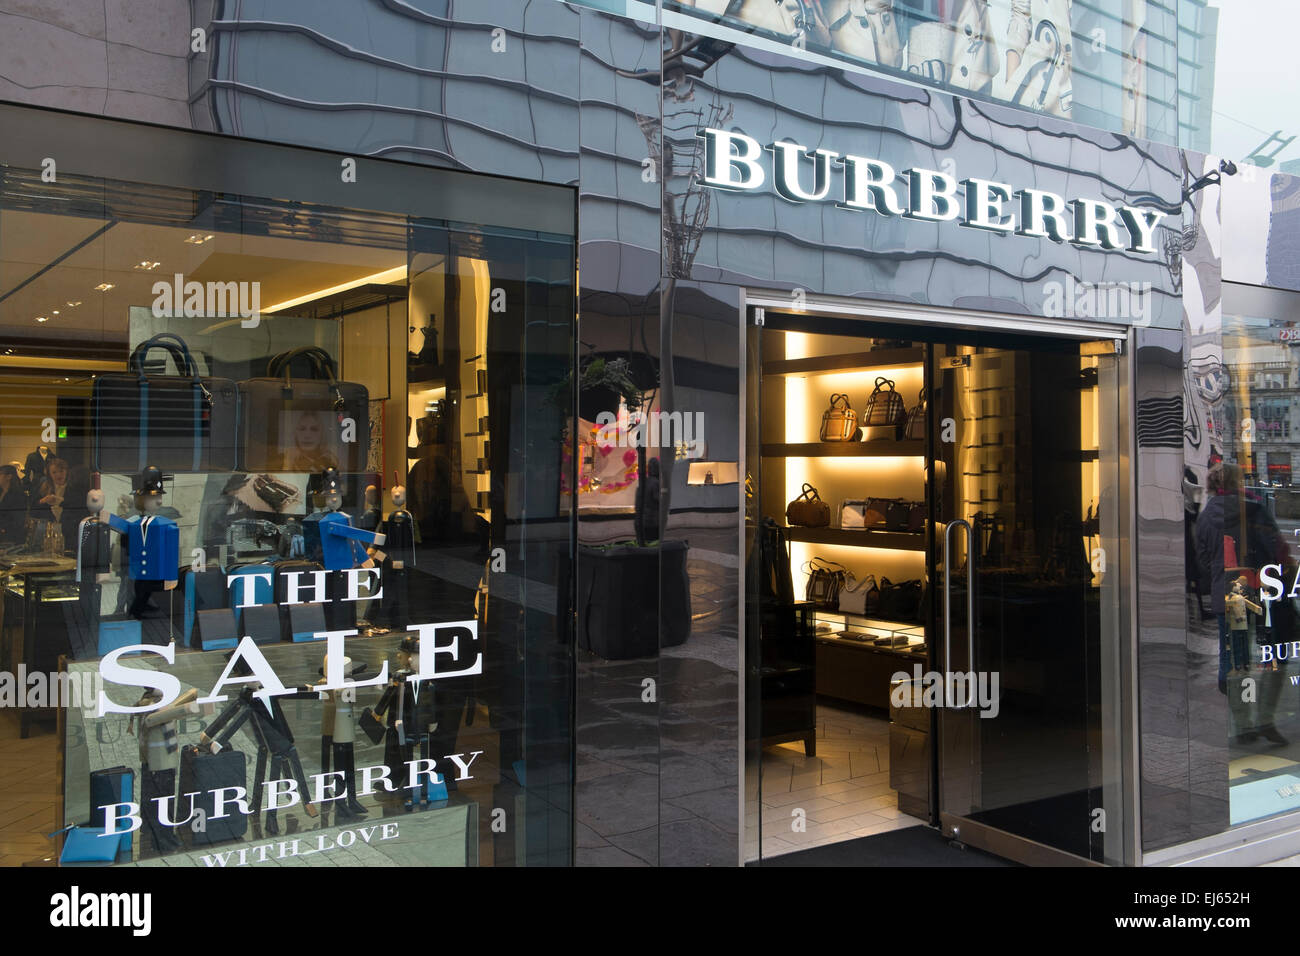 burberry luxury brand store shop in st anns street manchester england stock photo 80040985 alamy. Black Bedroom Furniture Sets. Home Design Ideas